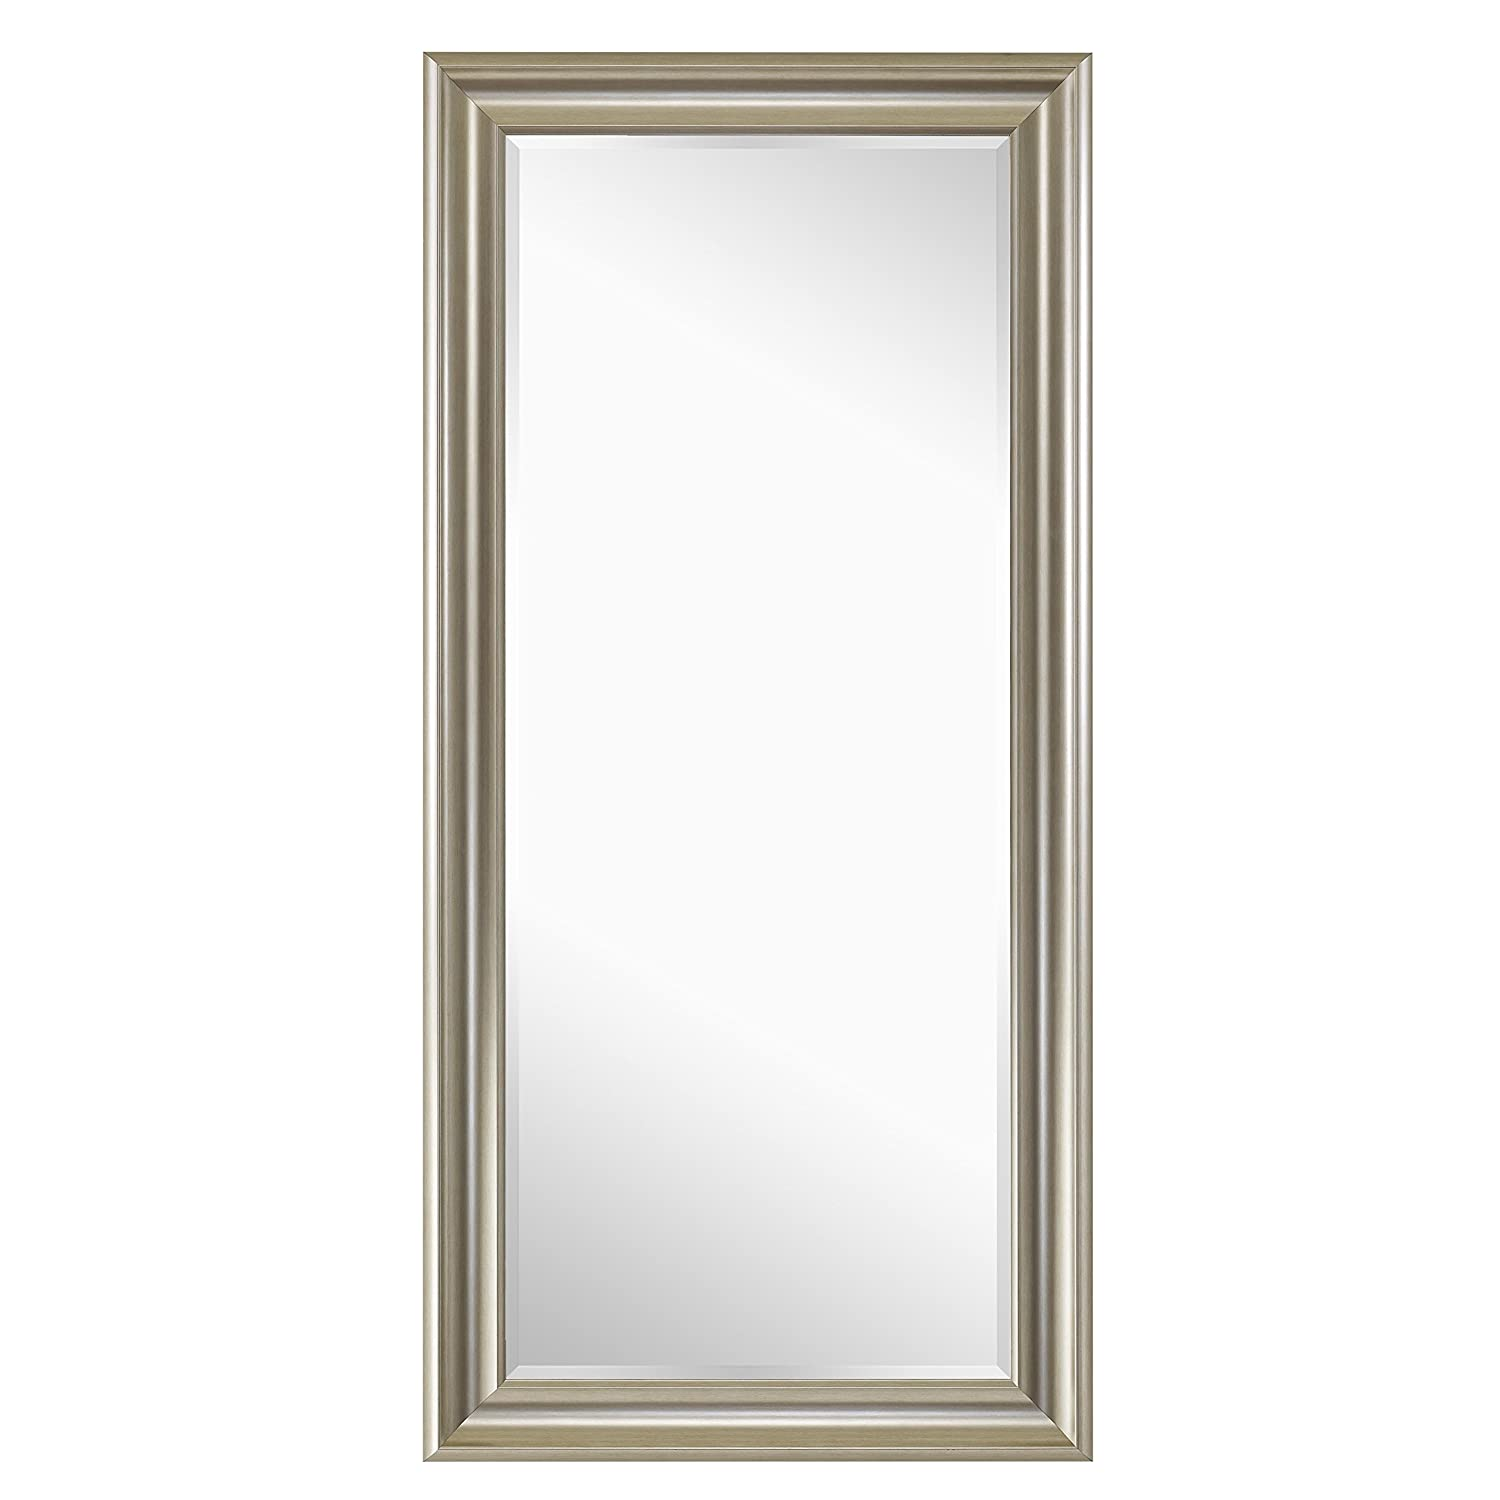 Naomi Home Framed Mirror Champagne/65 x 31